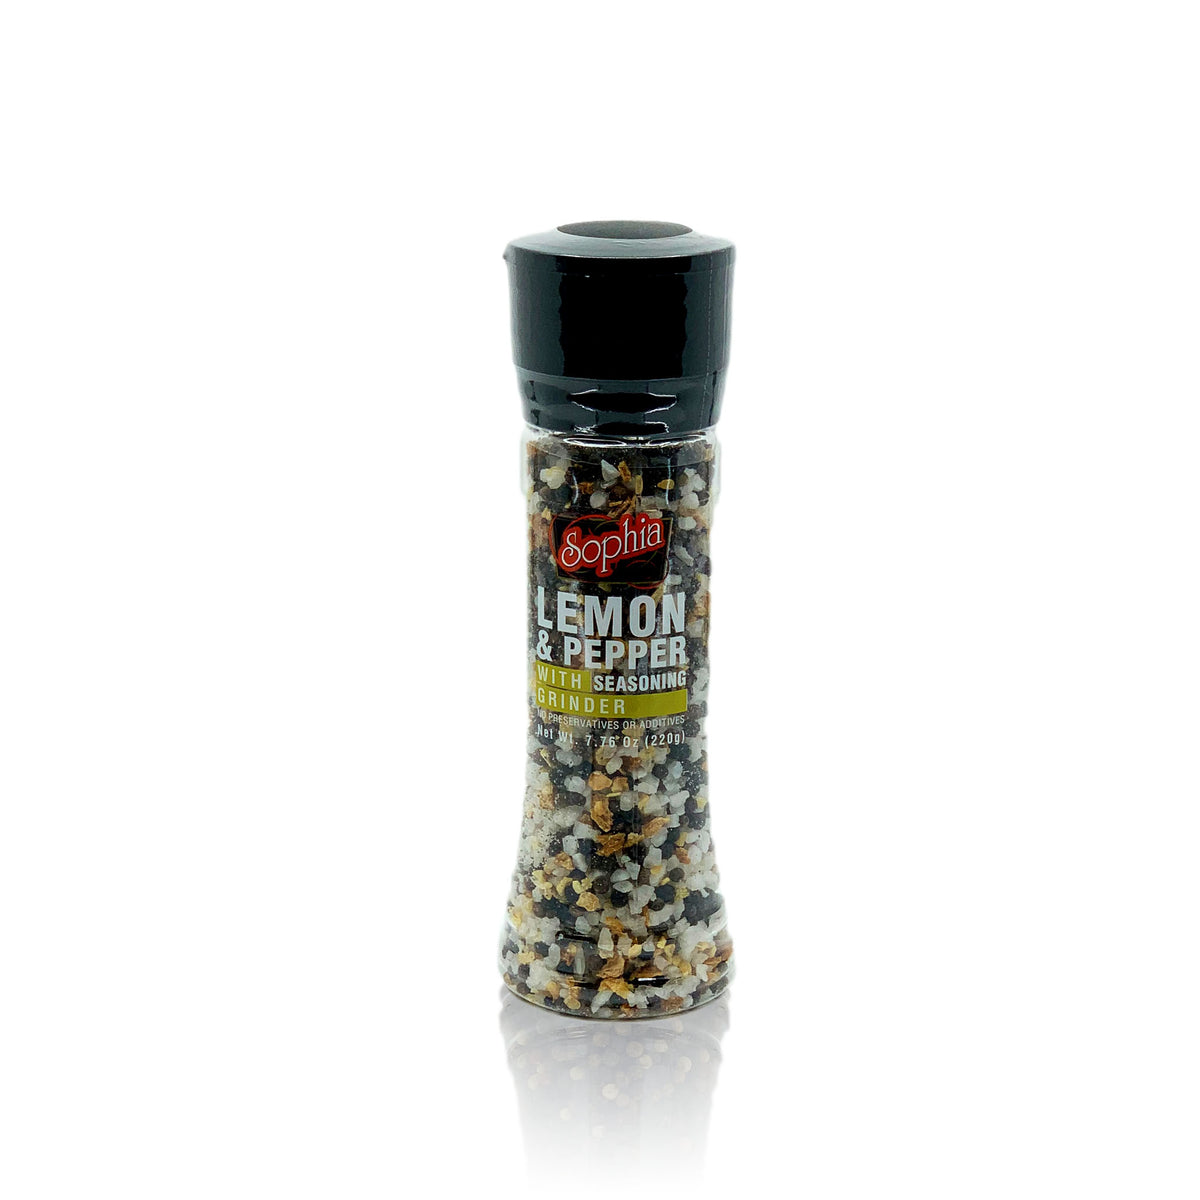 Sophia S&P Grinder - Lemon & Pepper 7.76oz